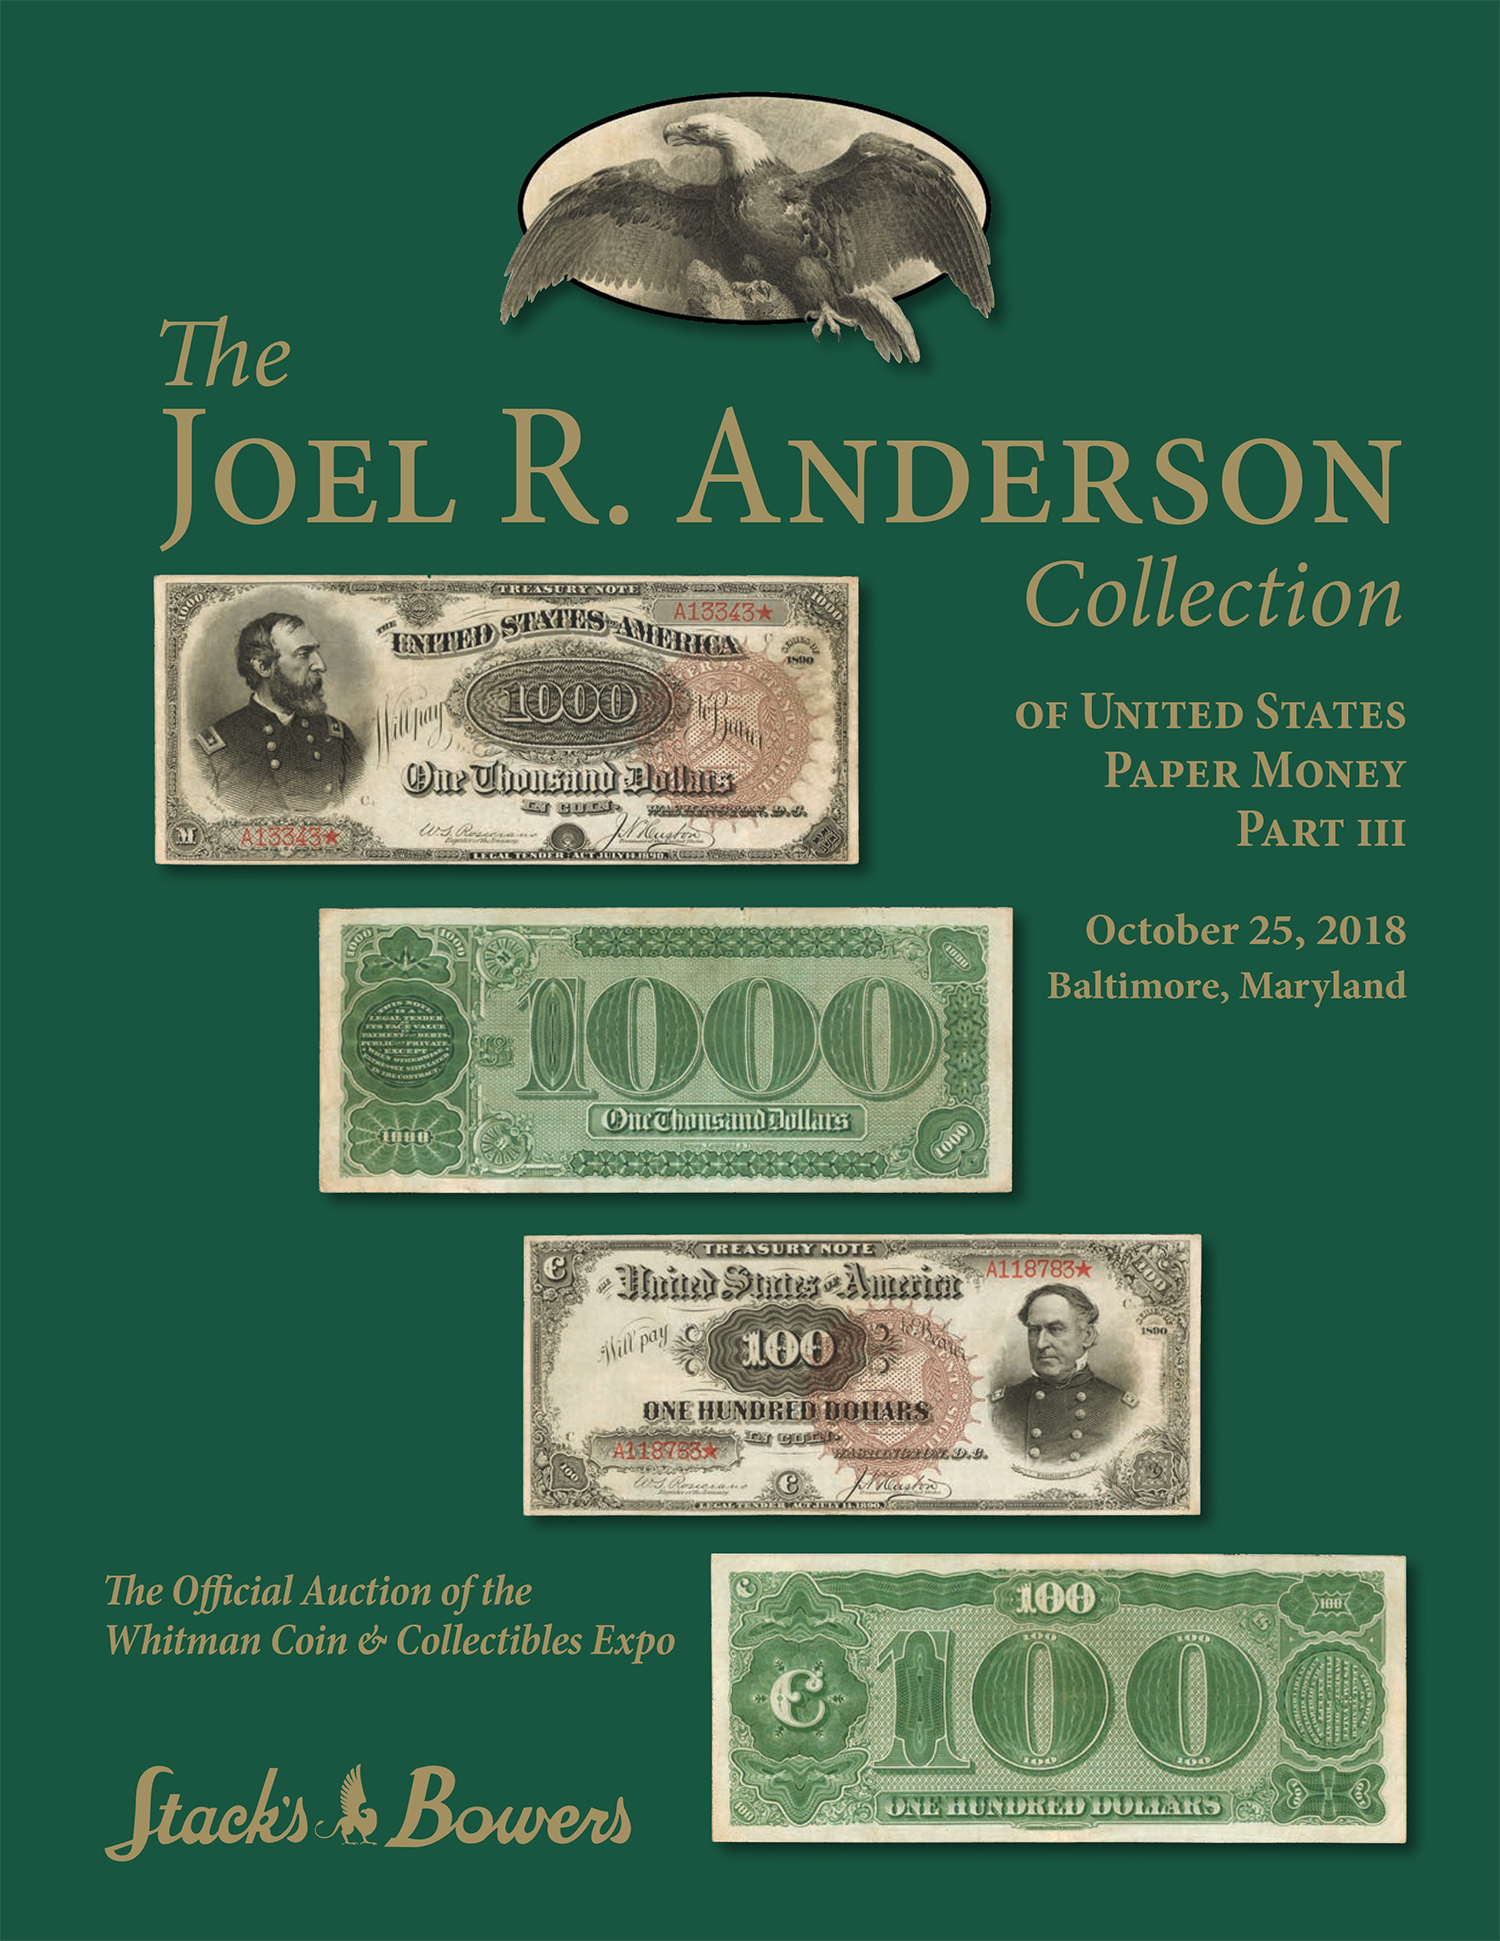 The Joel R. Anderson Collection of United States Paper Money Part III